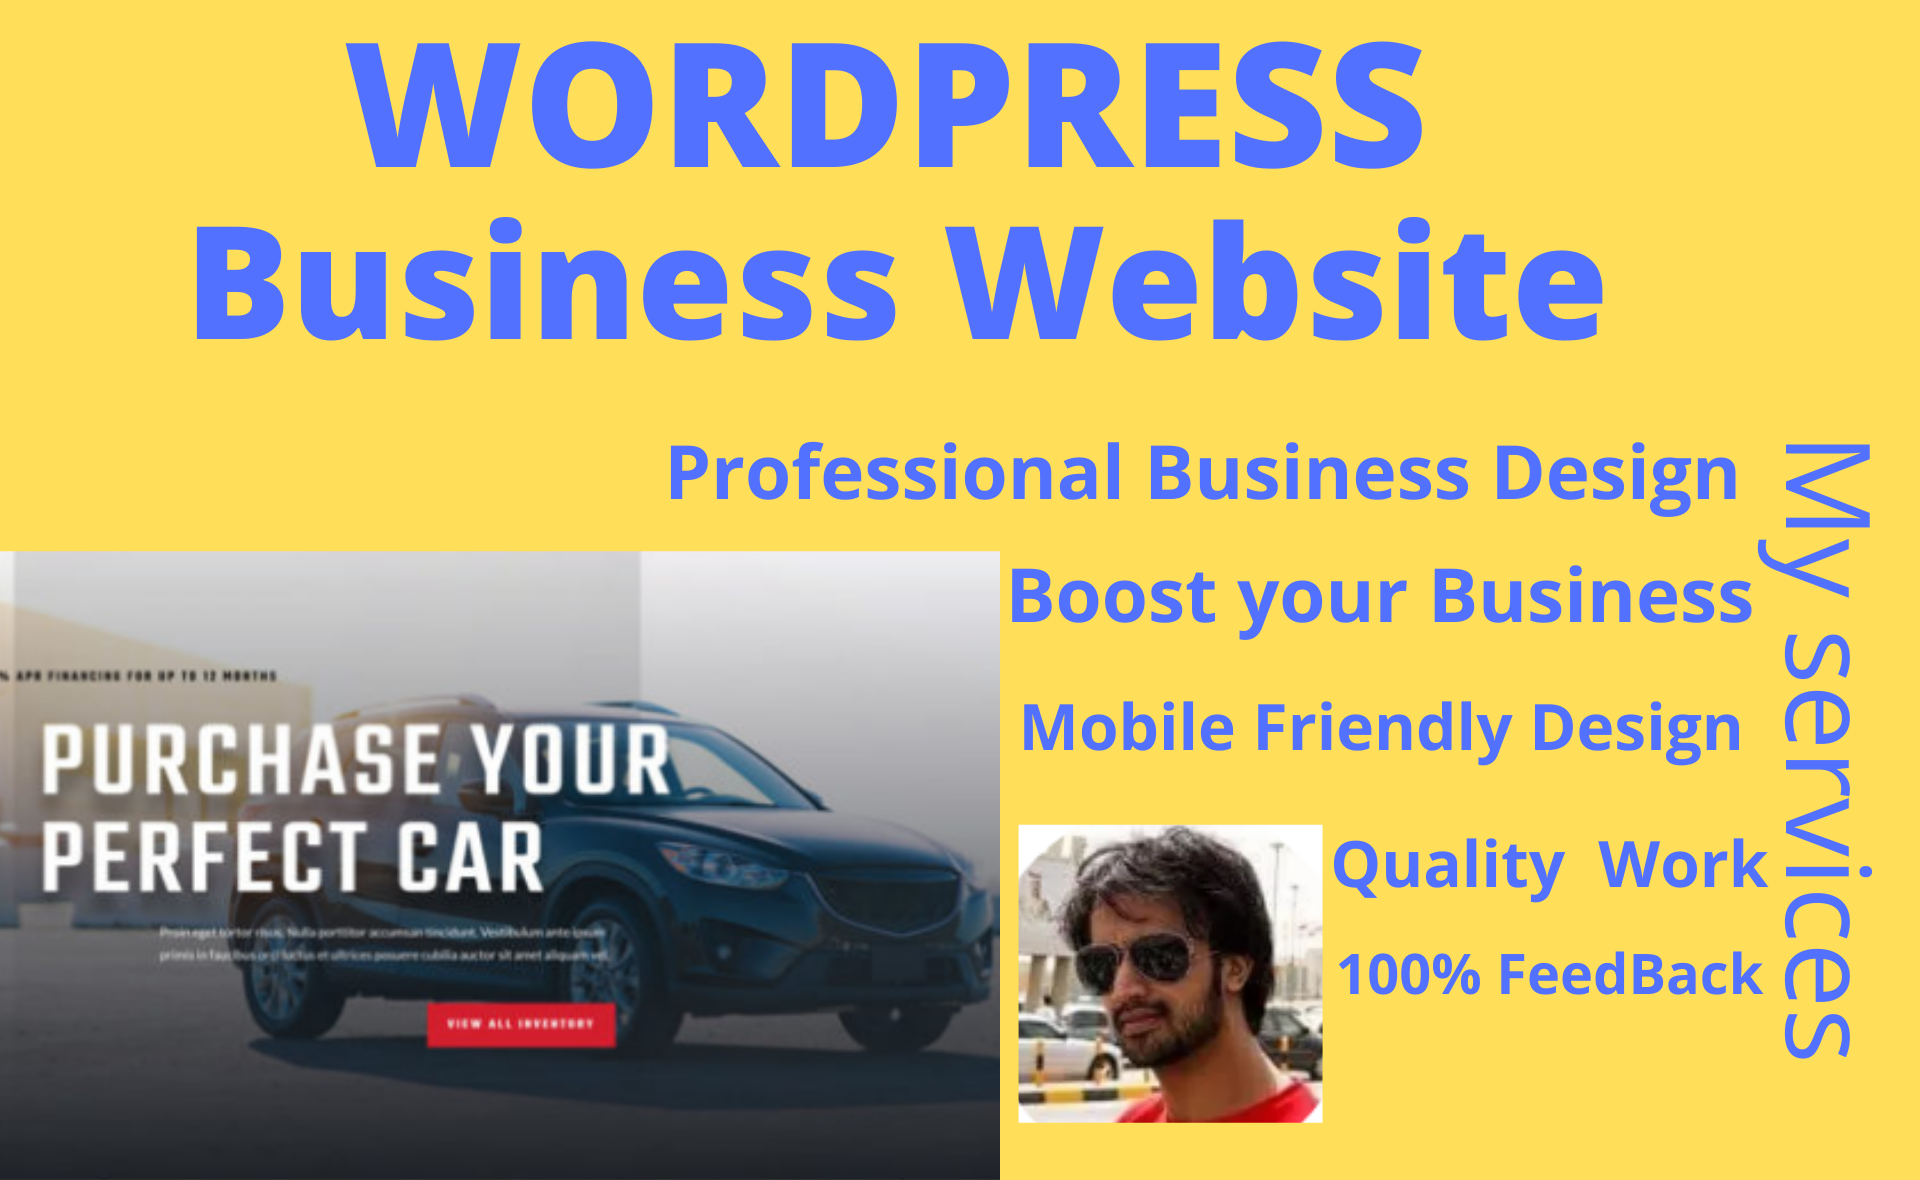 I will create a Professional Business Website in Wordpress